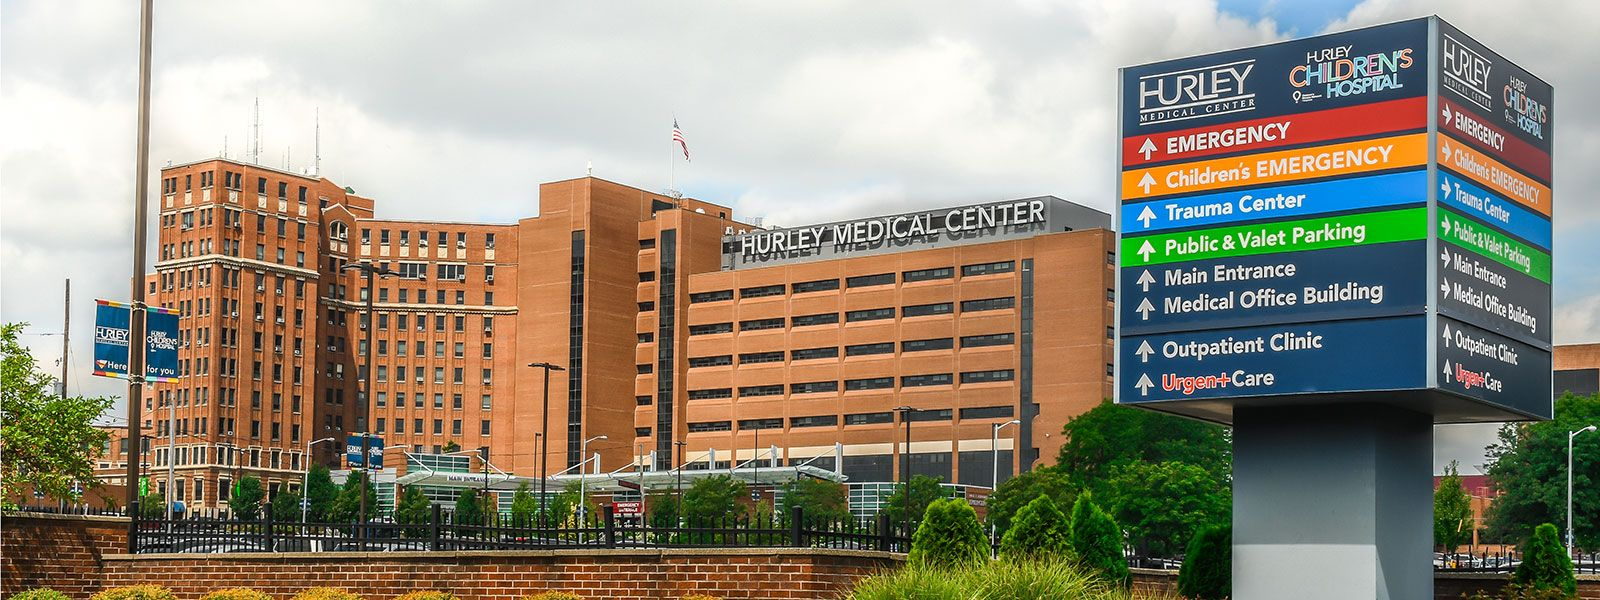 Hurley Urgent Care - Main Campus Building